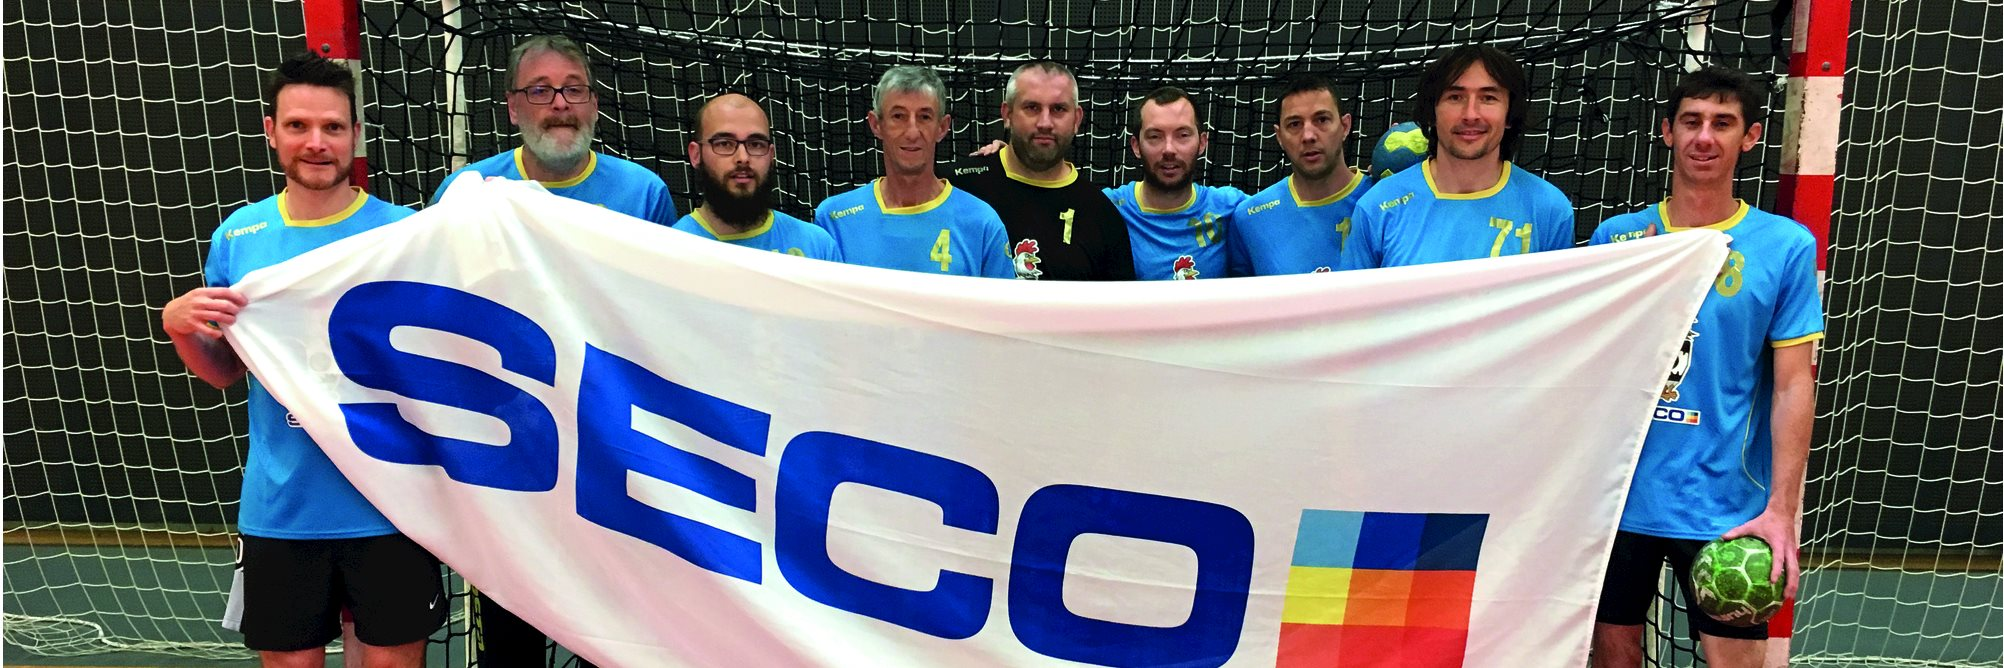 Seco flag flies high at World Company Games